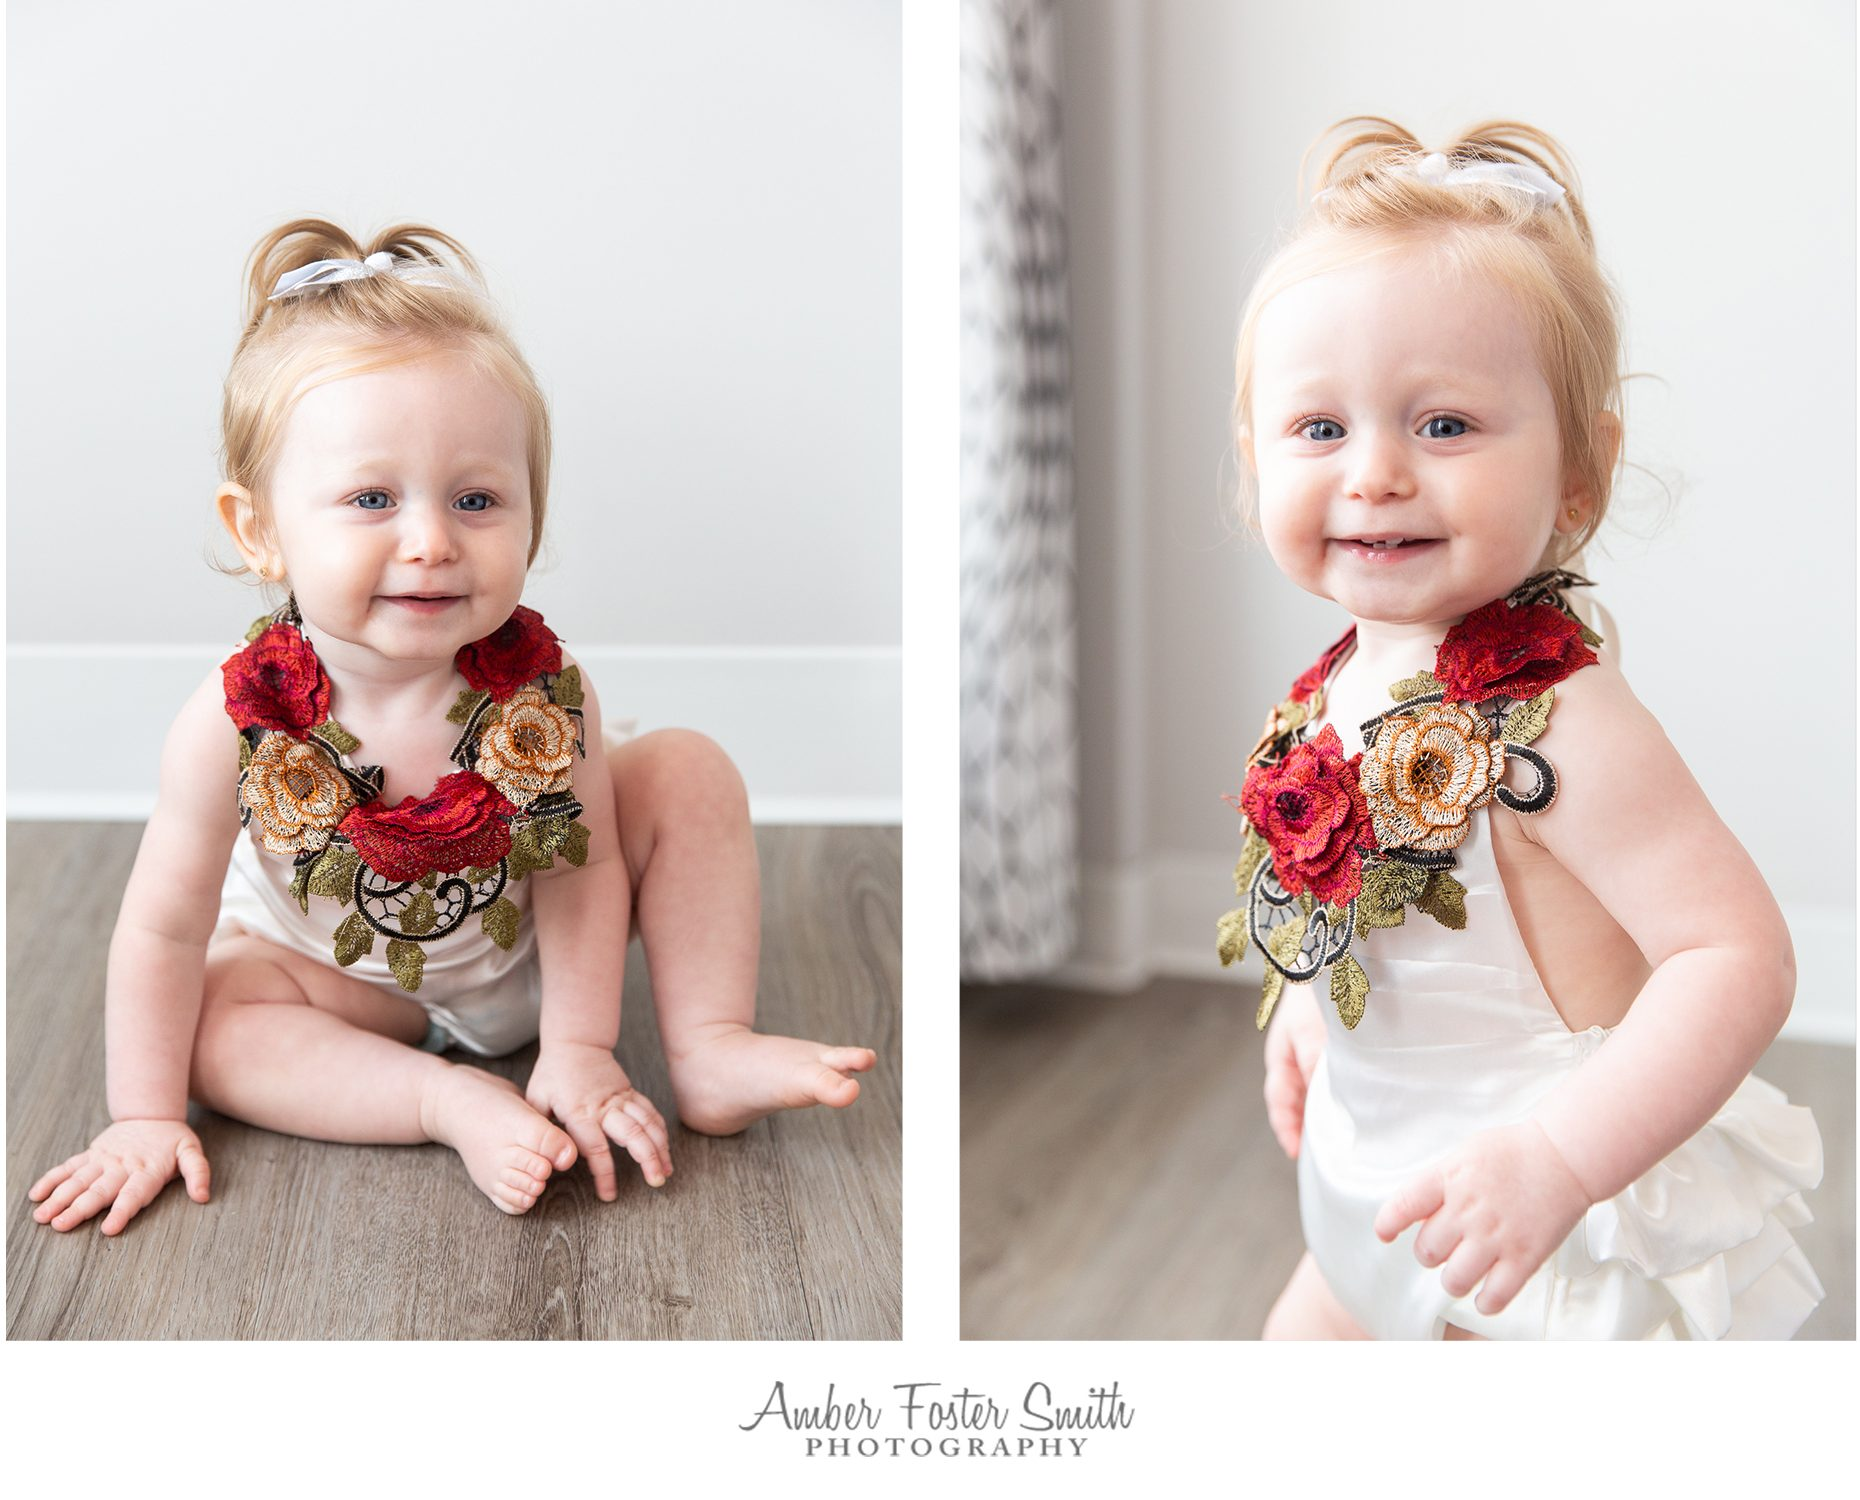 Amber Foster Smith Photography - Cake Smash Photography in Holly Springs